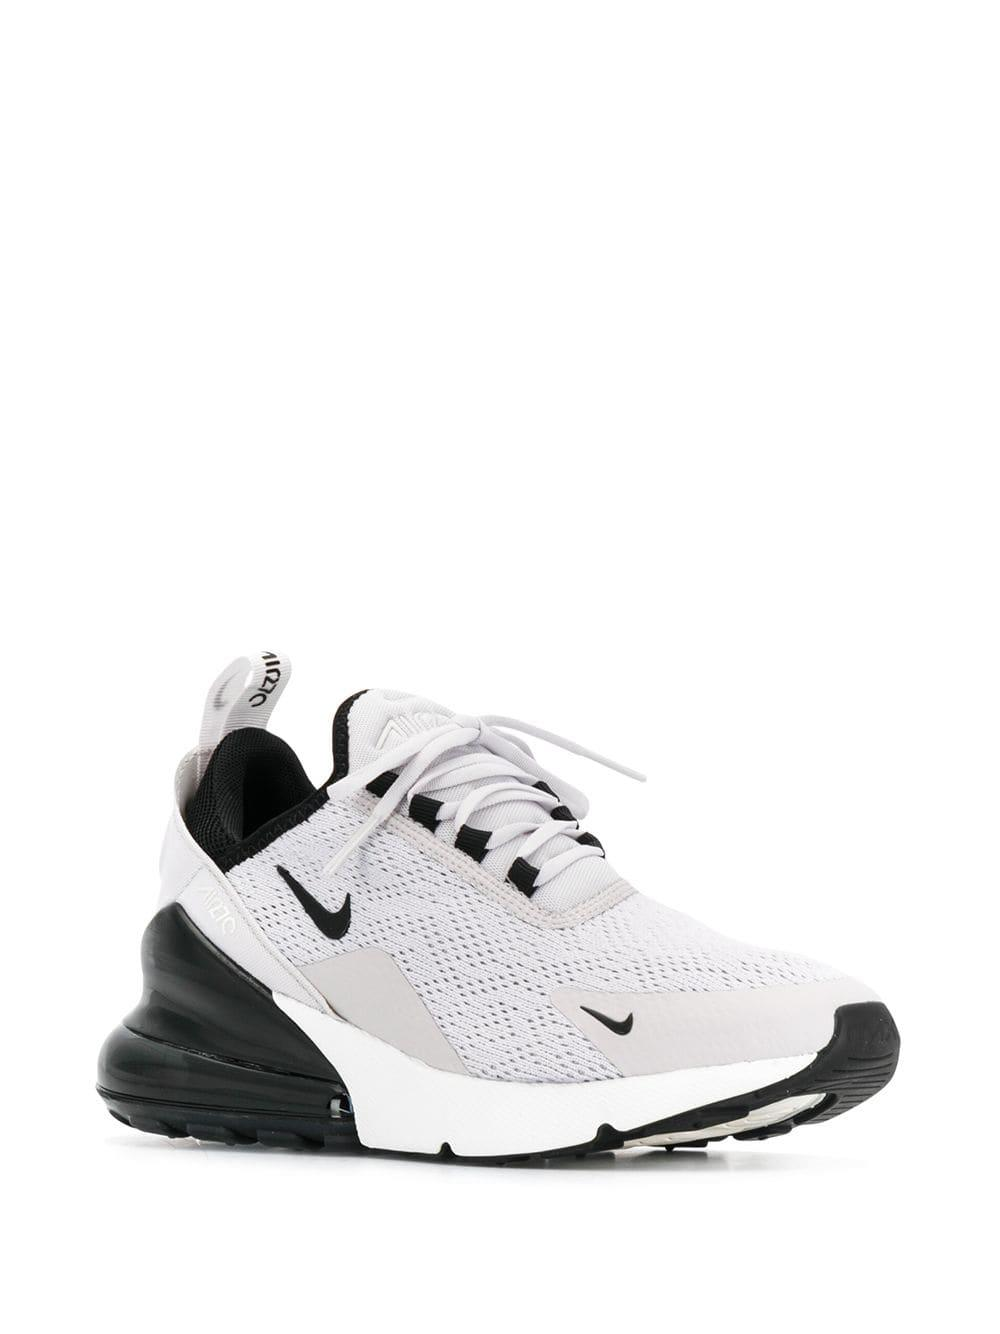 premium selection 28172 d7ffb Nike Air Max 270 Sneakers in White - Lyst